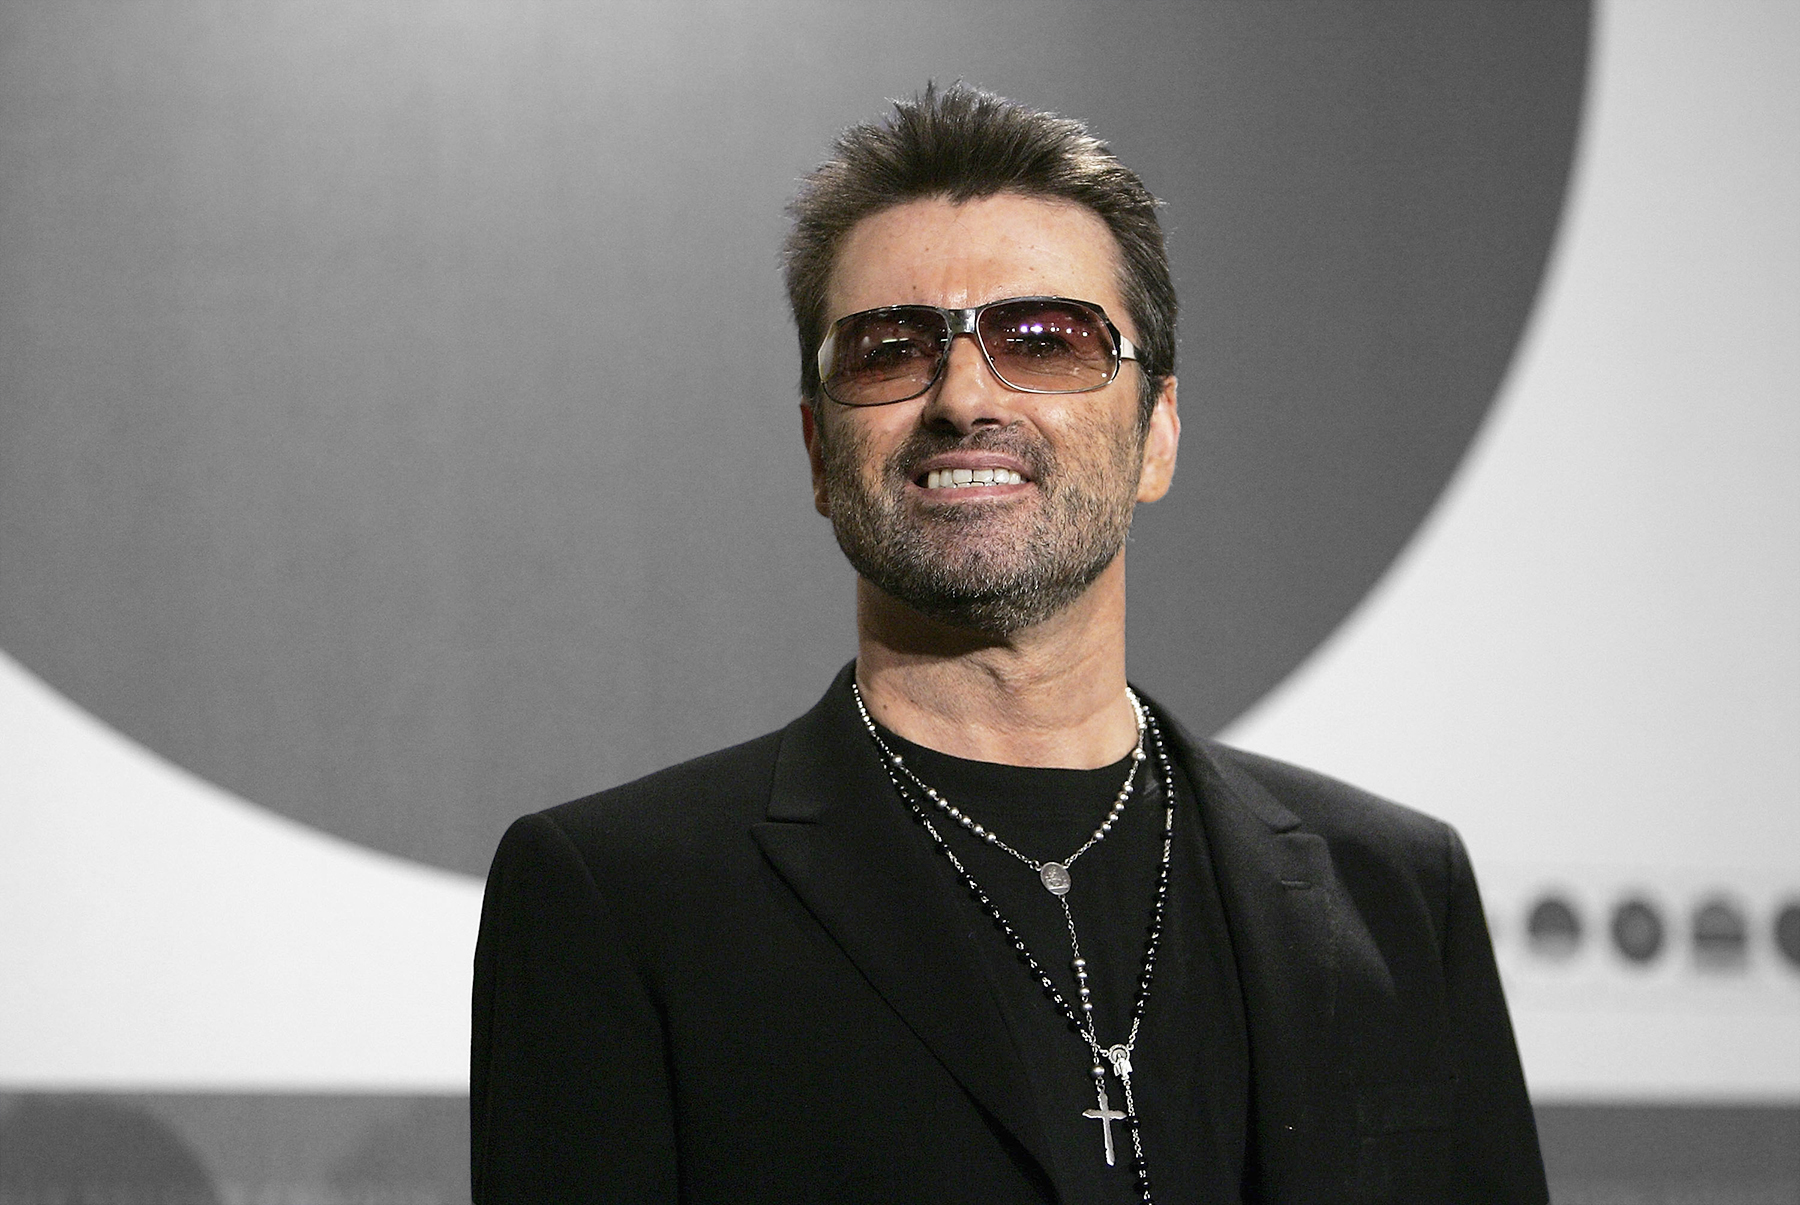 george micheal_GettyImages-52204069